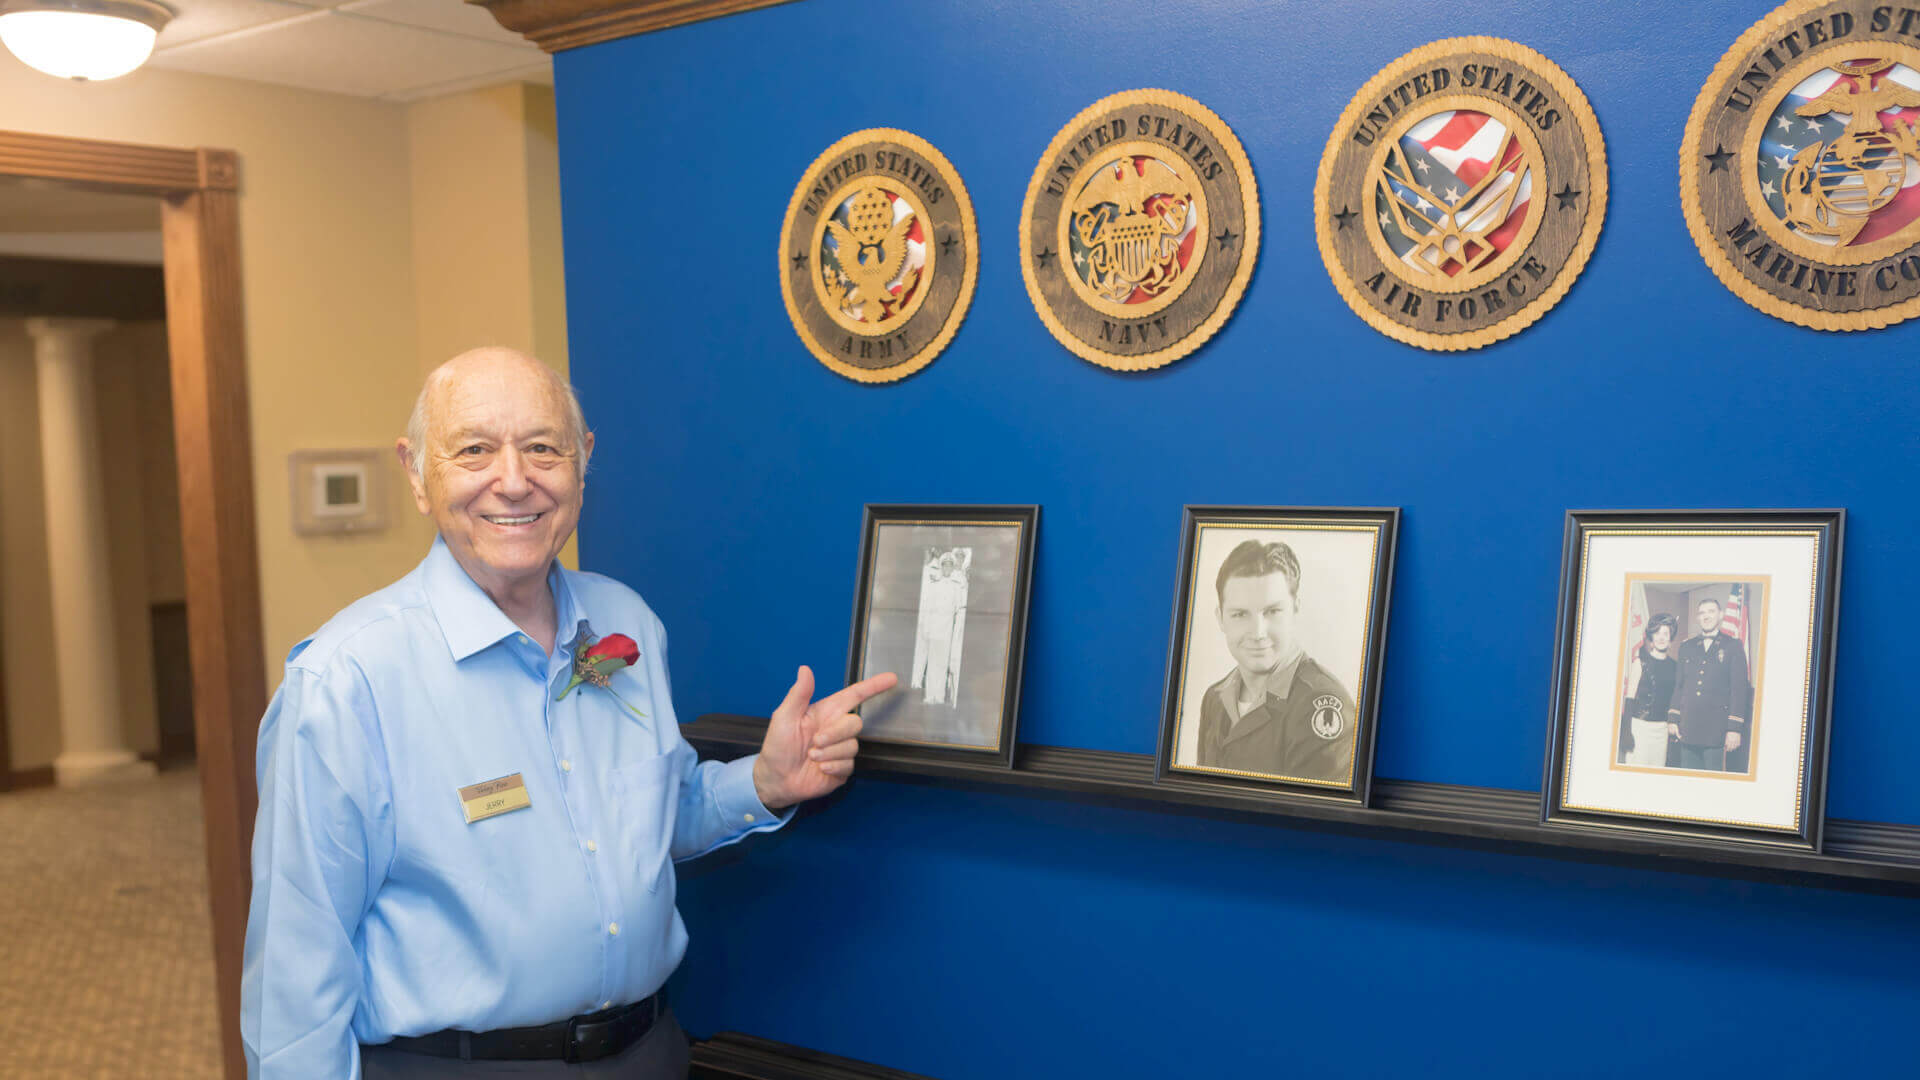 Senior Veteran standing in front of the Wall of Honor, showing off his service picture.